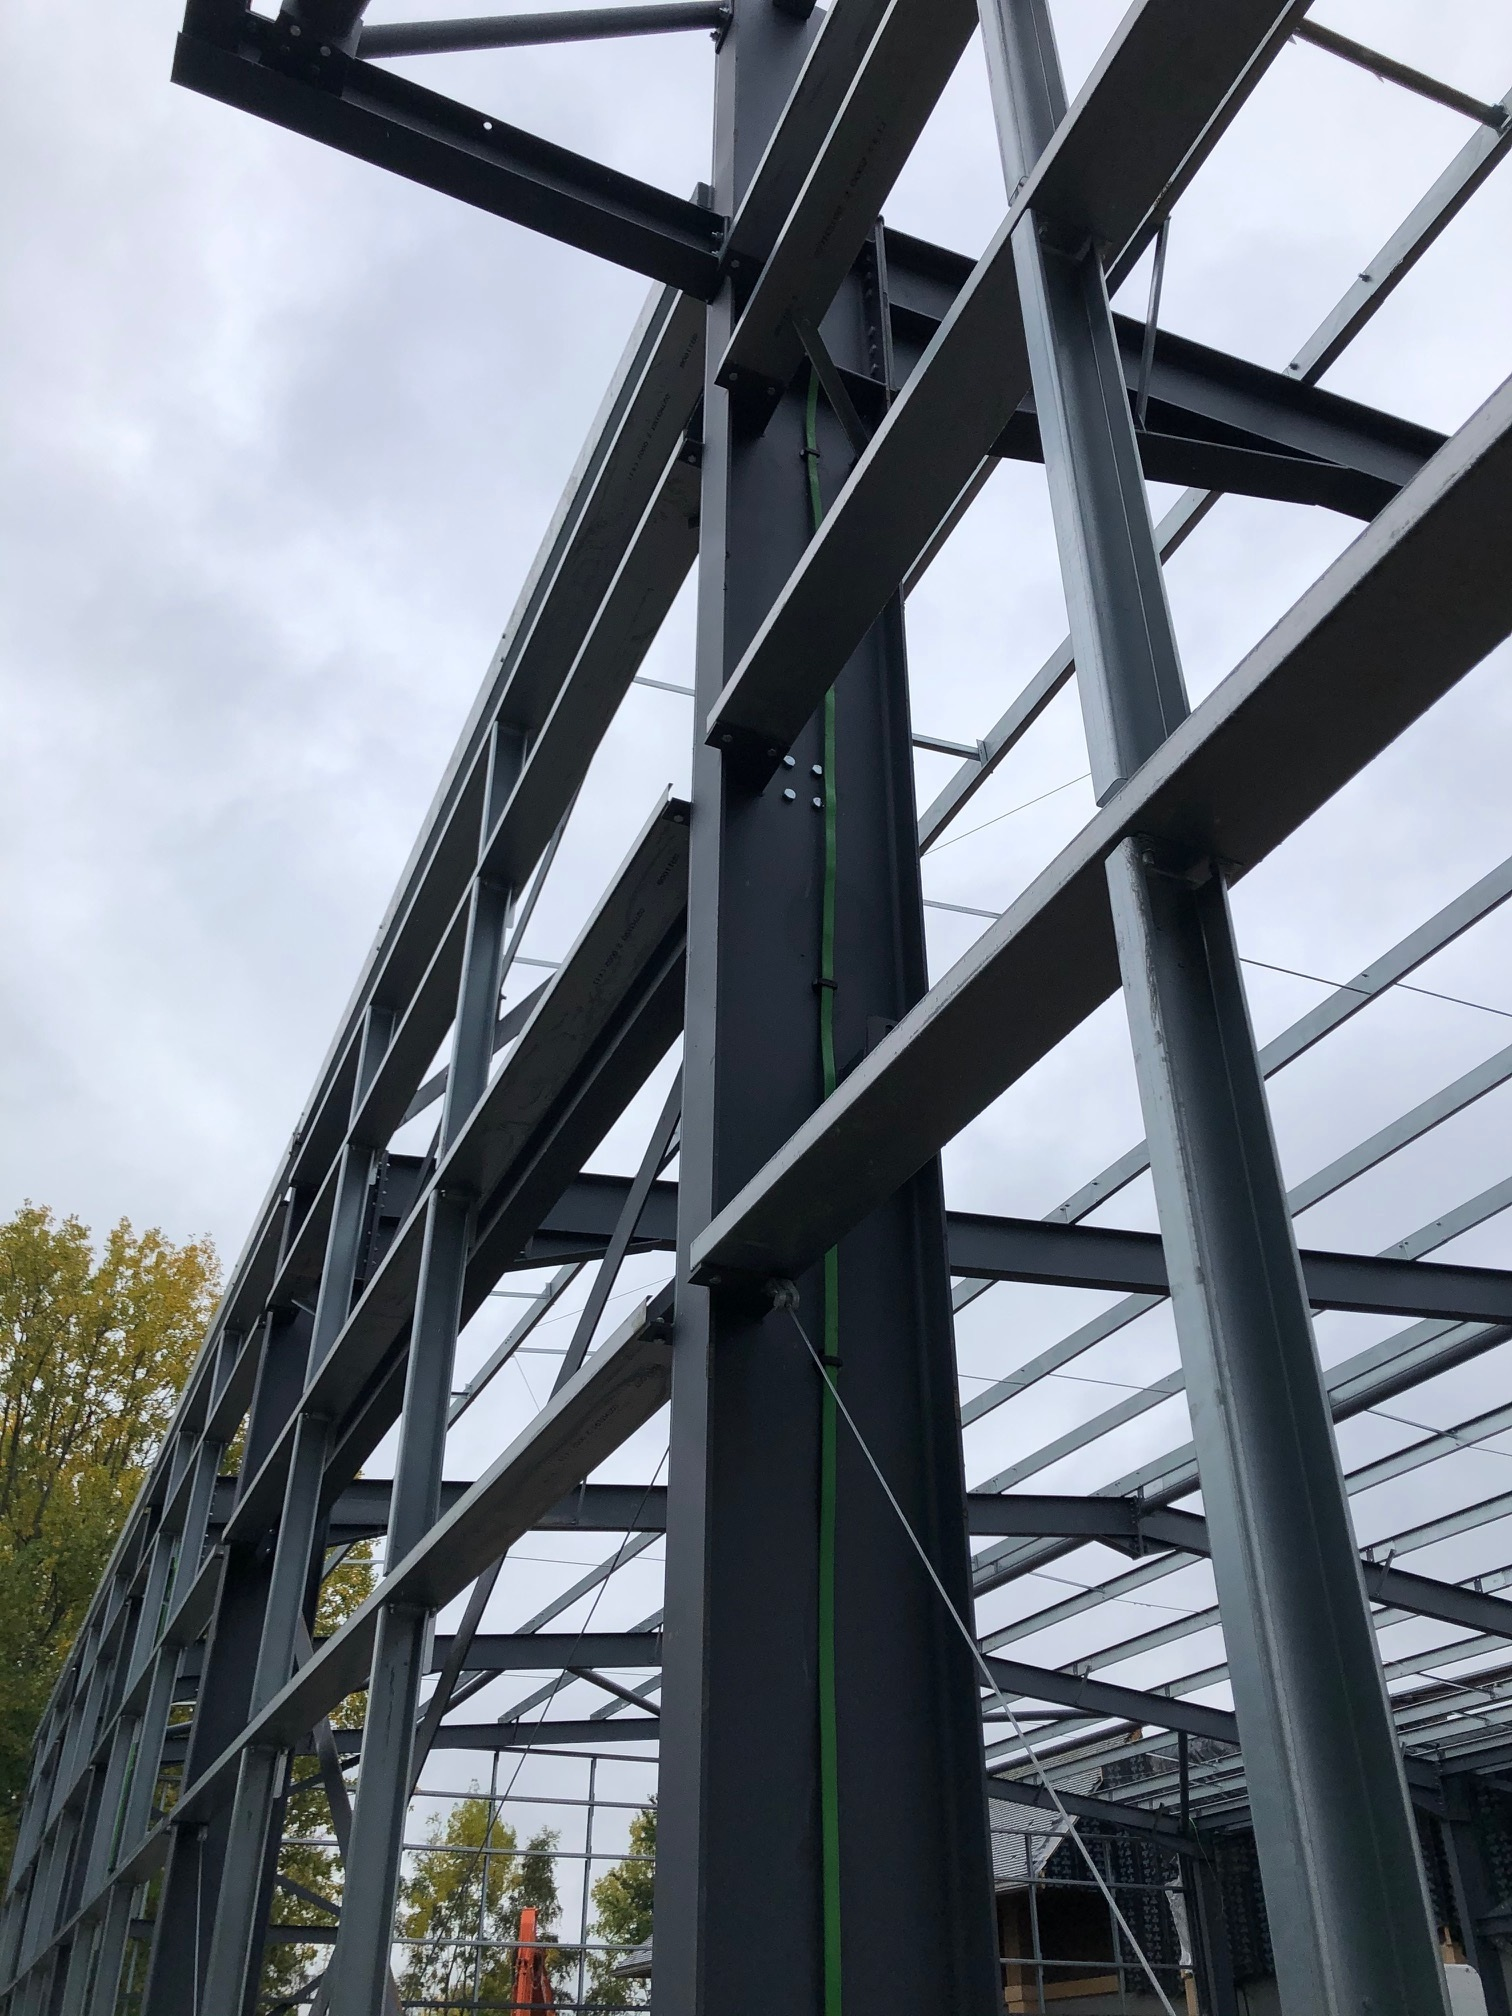 Wallis Lightning Protection Tape Installed and clipped to the vertical steels. A ring circuit at roof level then links the cage structure and the system terminate into the ground via earth rods accessed through concrete earth pits.